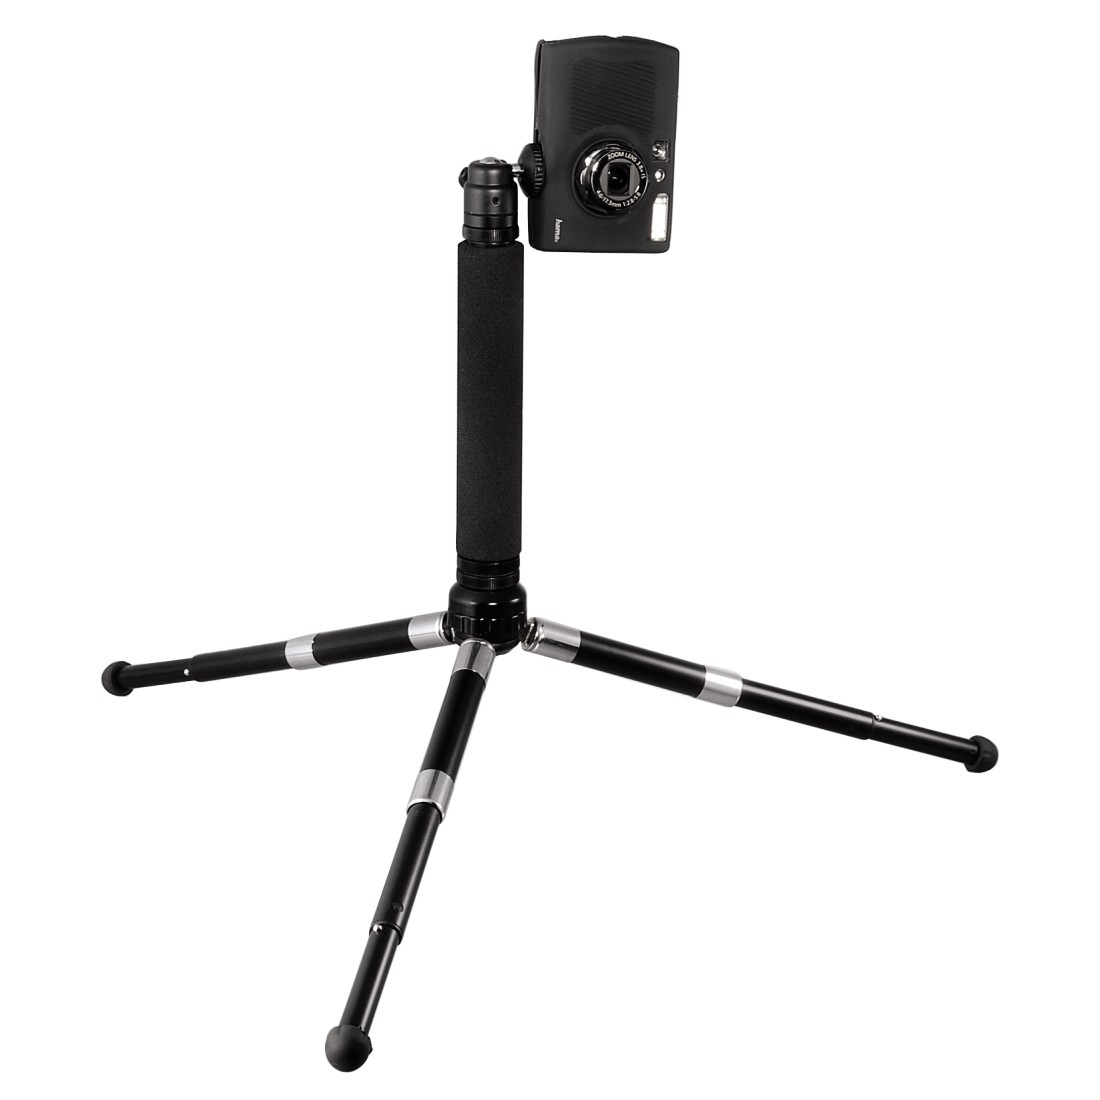 awx2 High-Res Appliance 2 - Hama, Traveller Multi Table Top Tripod, with Removable Telescopic Tube